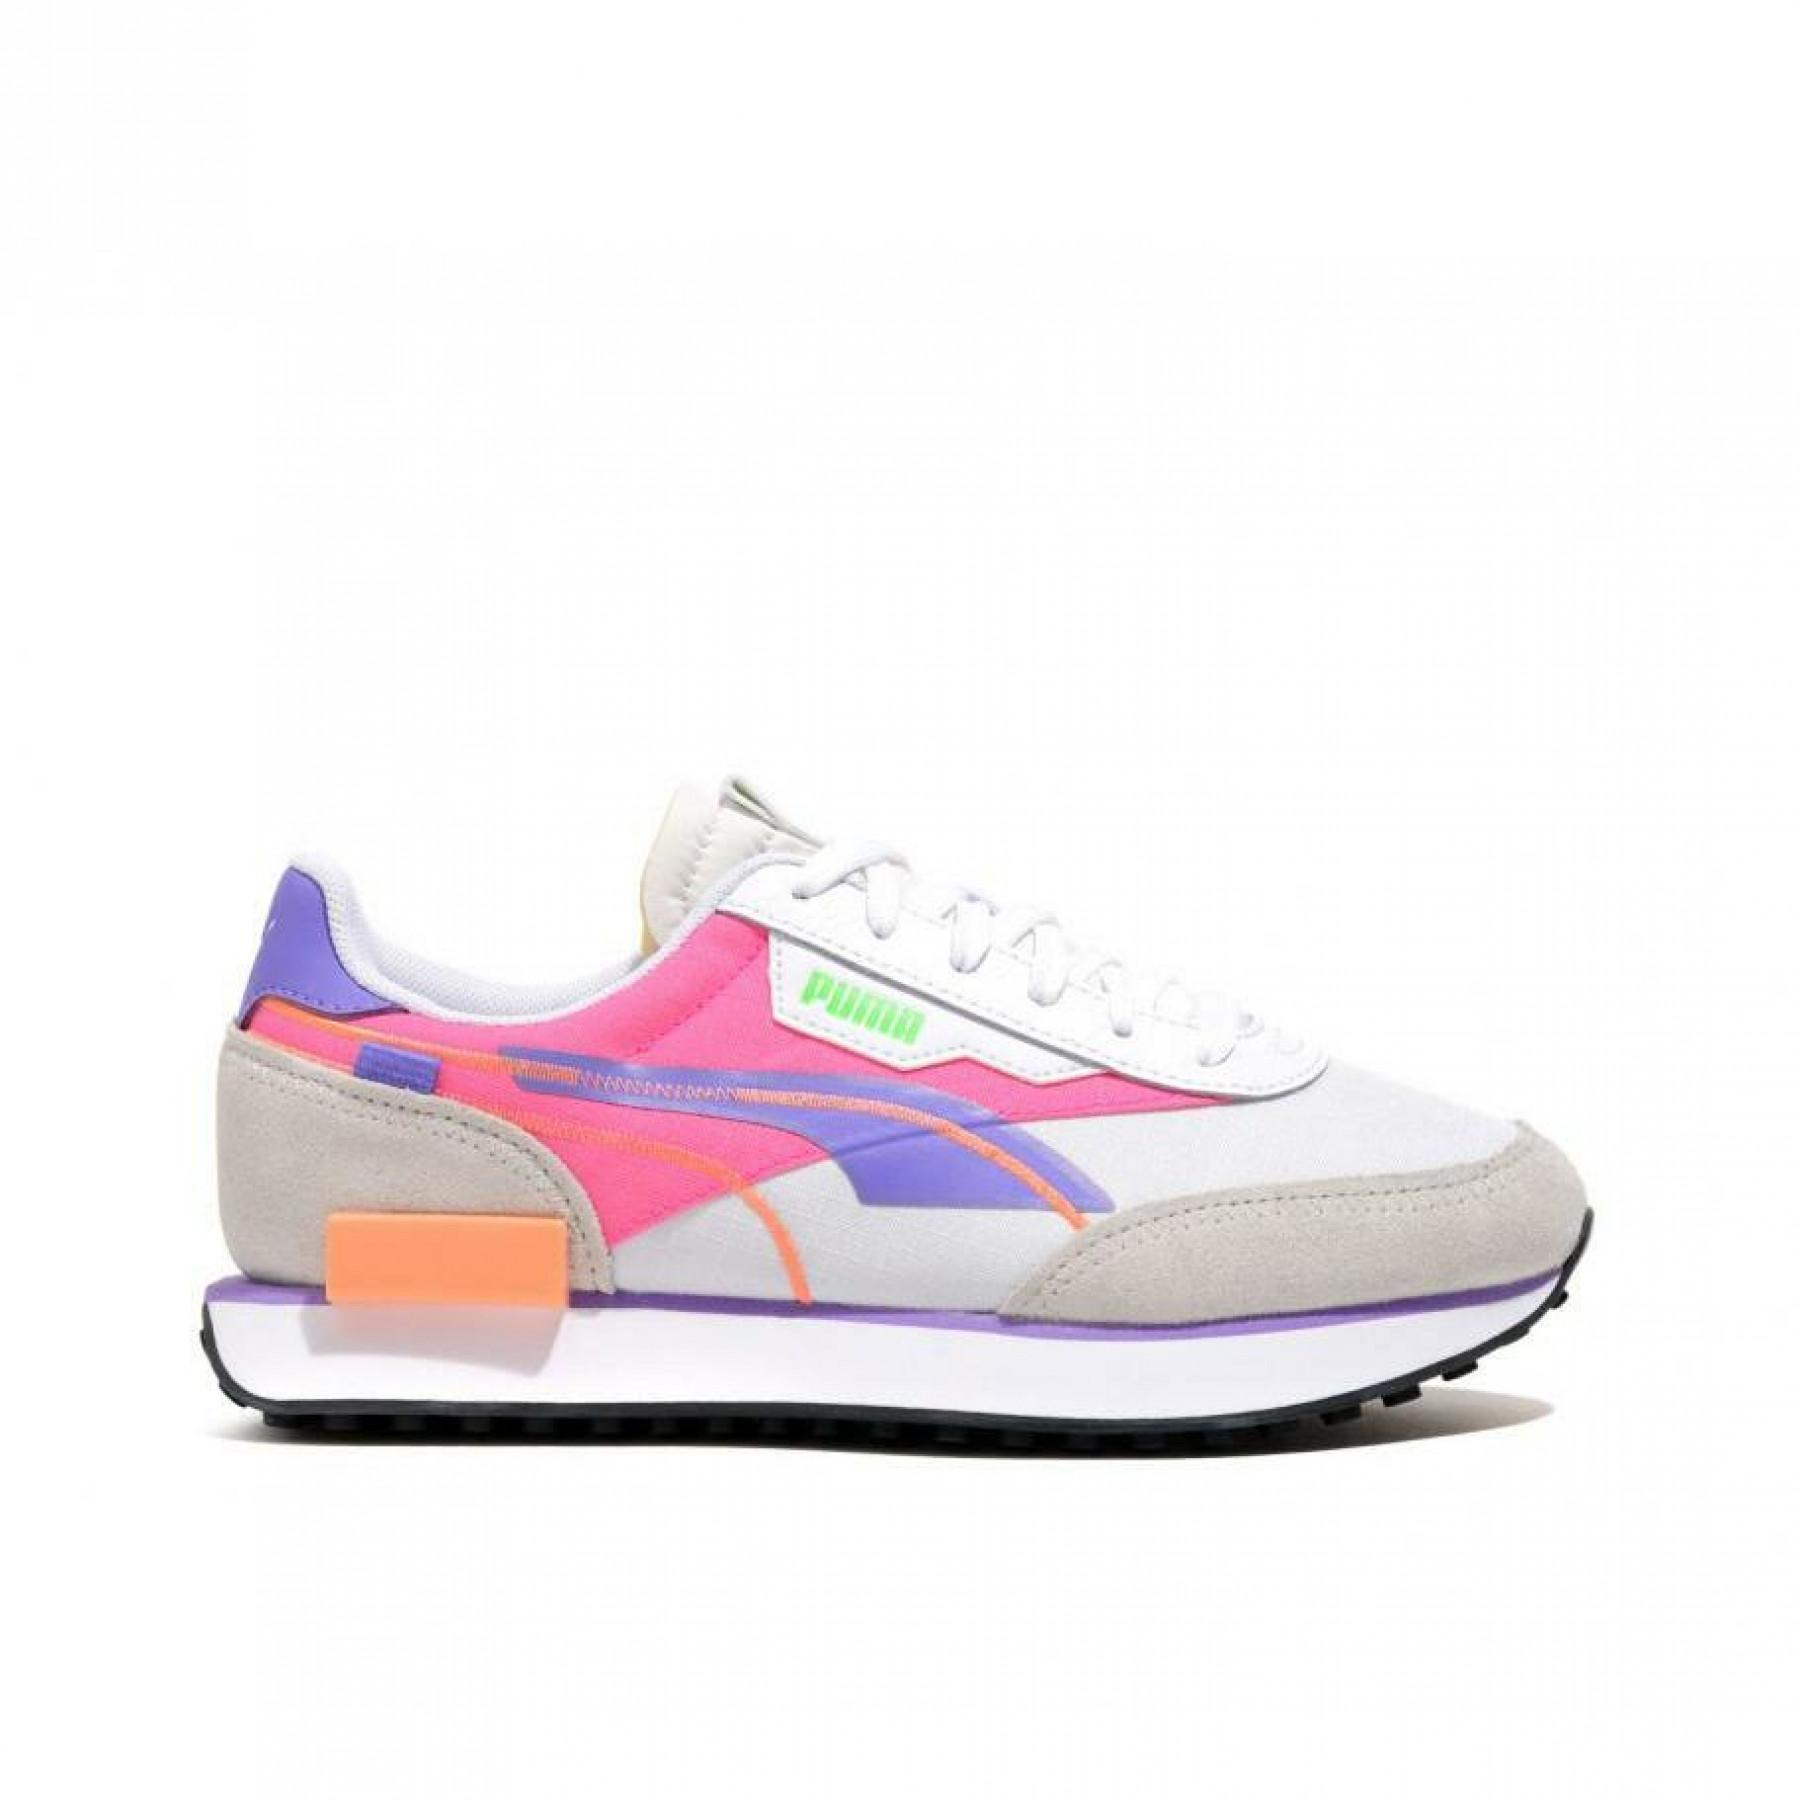 Women's sneakers Puma Future Rider Twofold